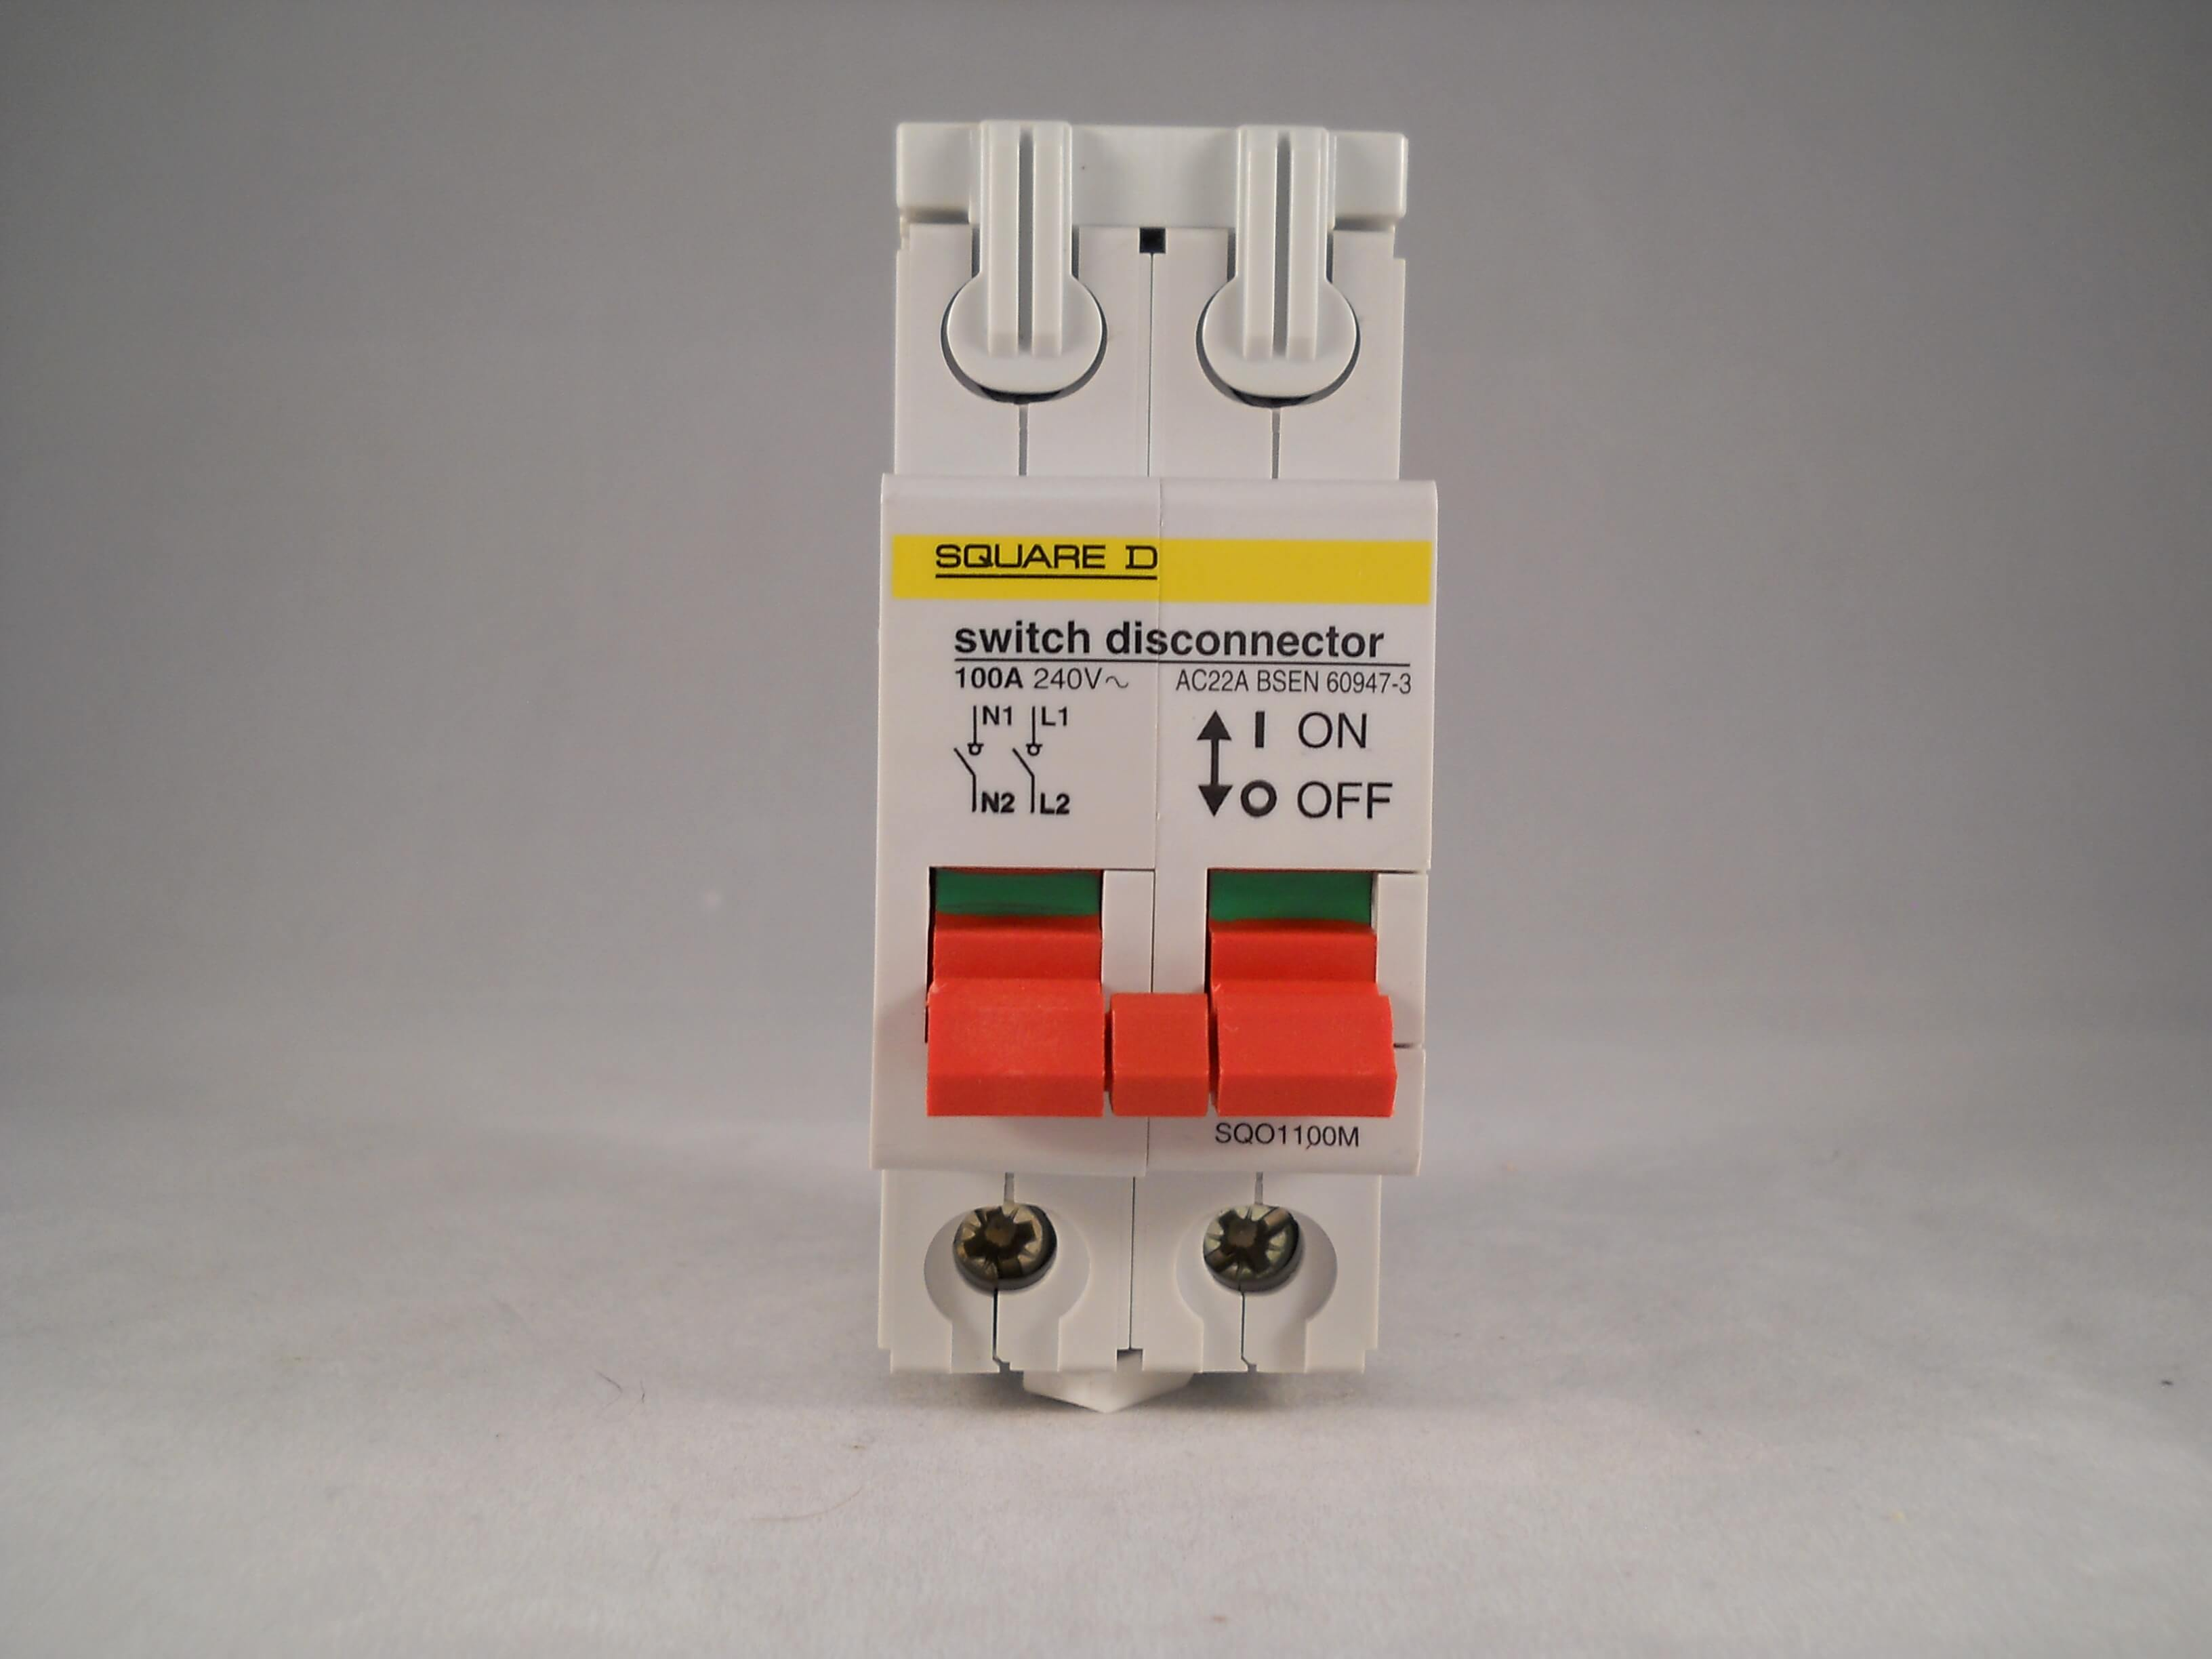 Ldr Based Power Saver For Intensity Controlled Street Light